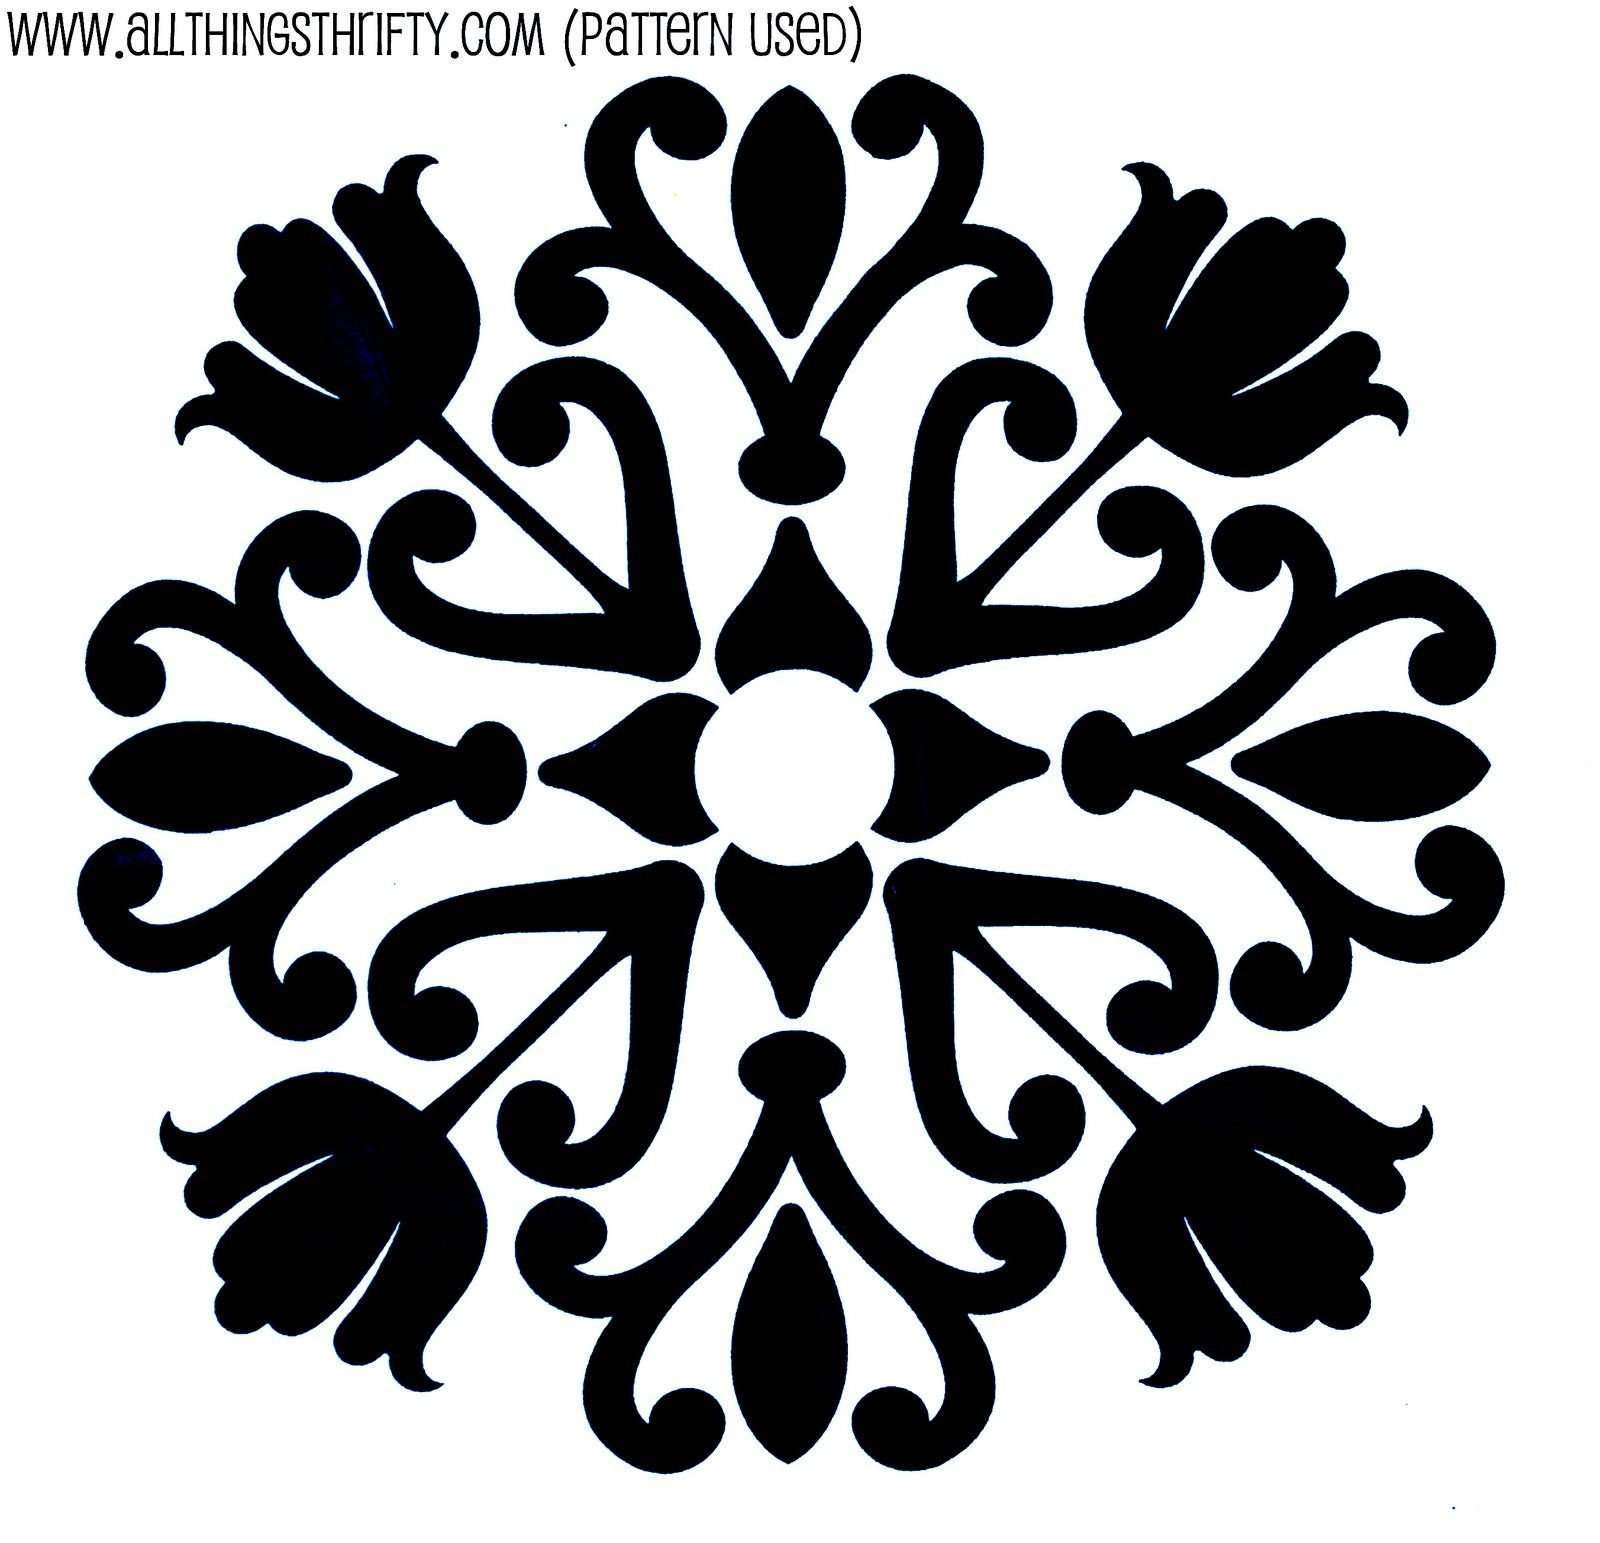 Stencil Patterns Just For You!   Share Your Craft   Stencil Designs - Free Printable Wall Stencils For Painting